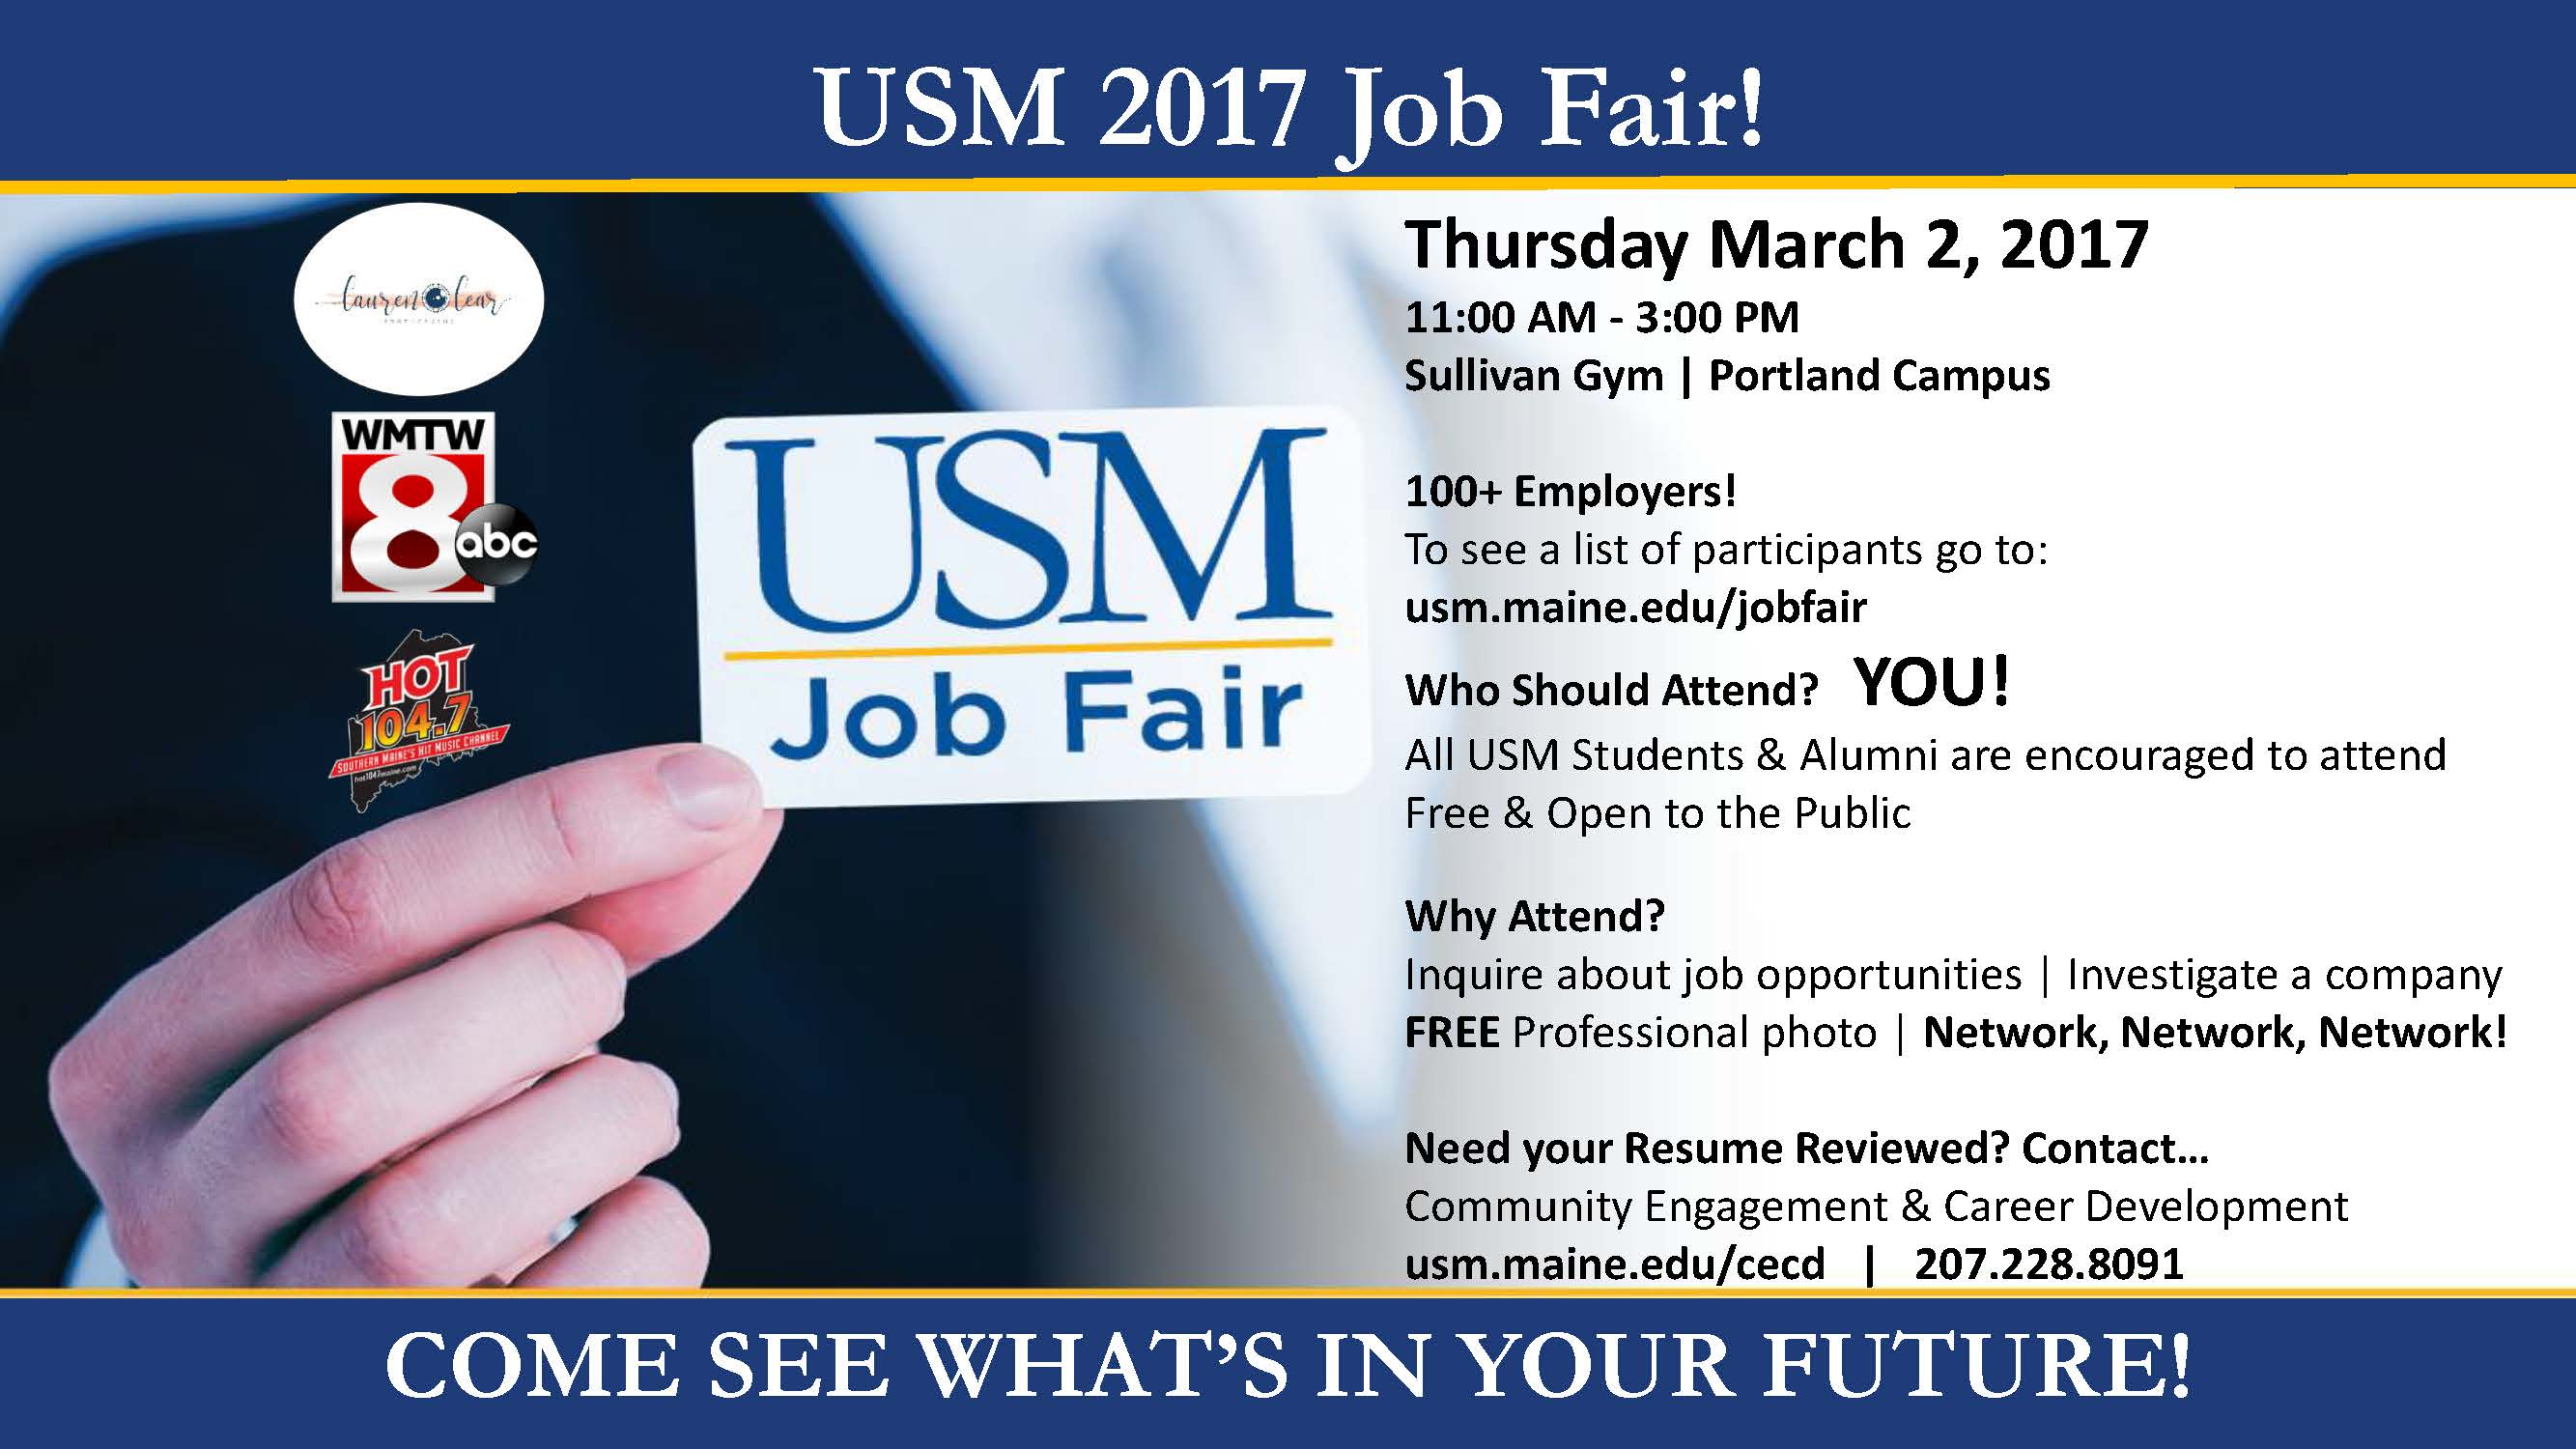 usm job fair community engagement and career development image 2017 usm job fair 2